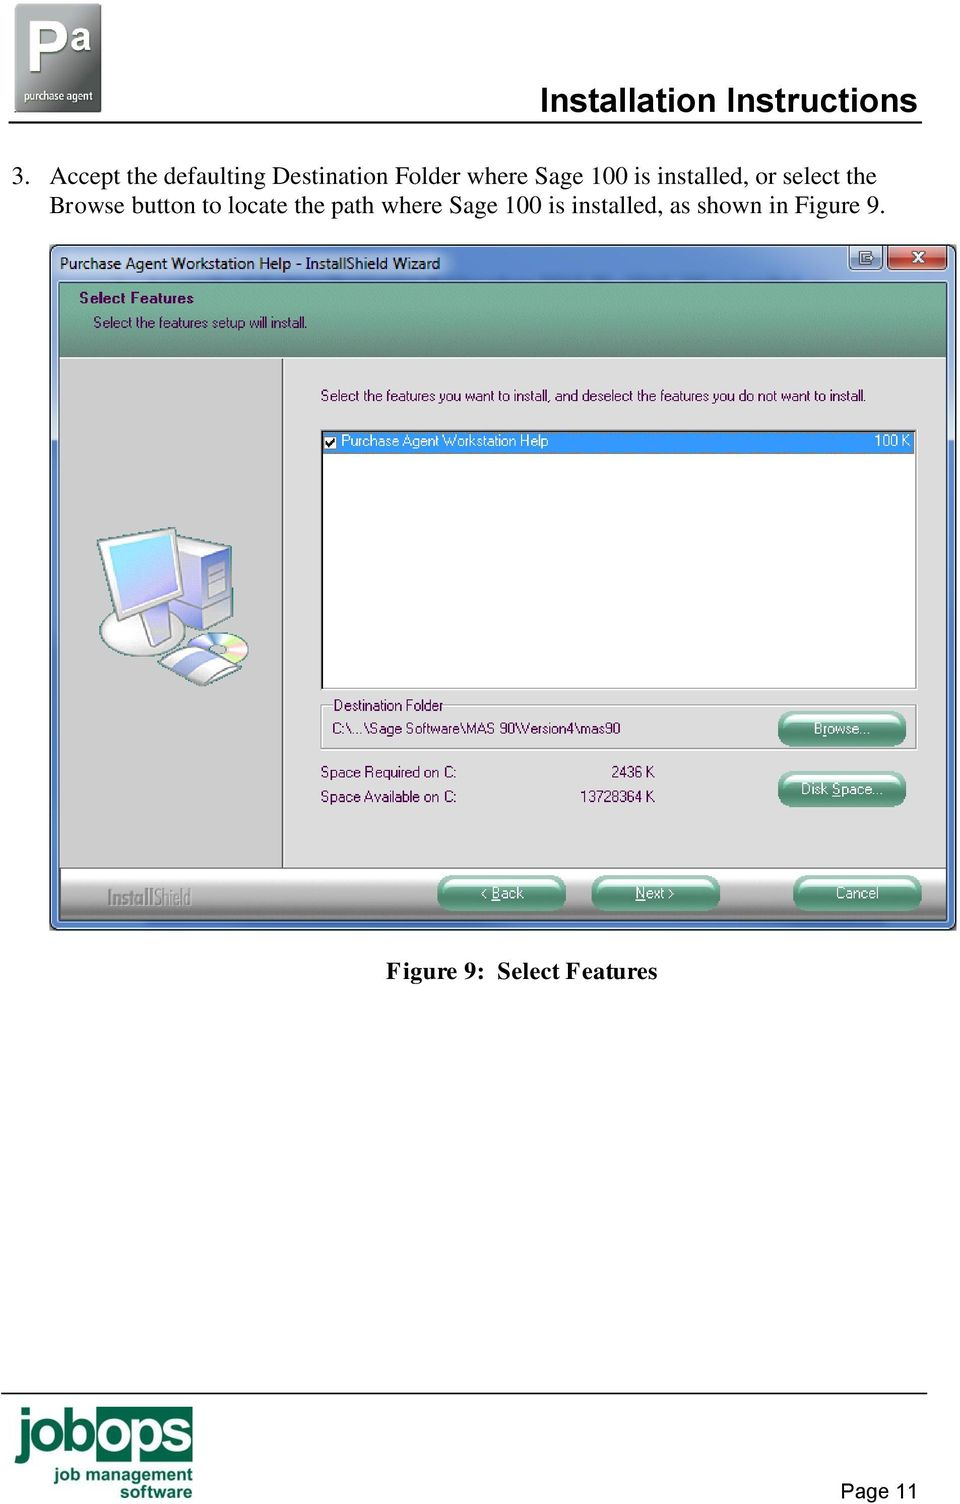 to locate the path where Sage 100 is installed, as